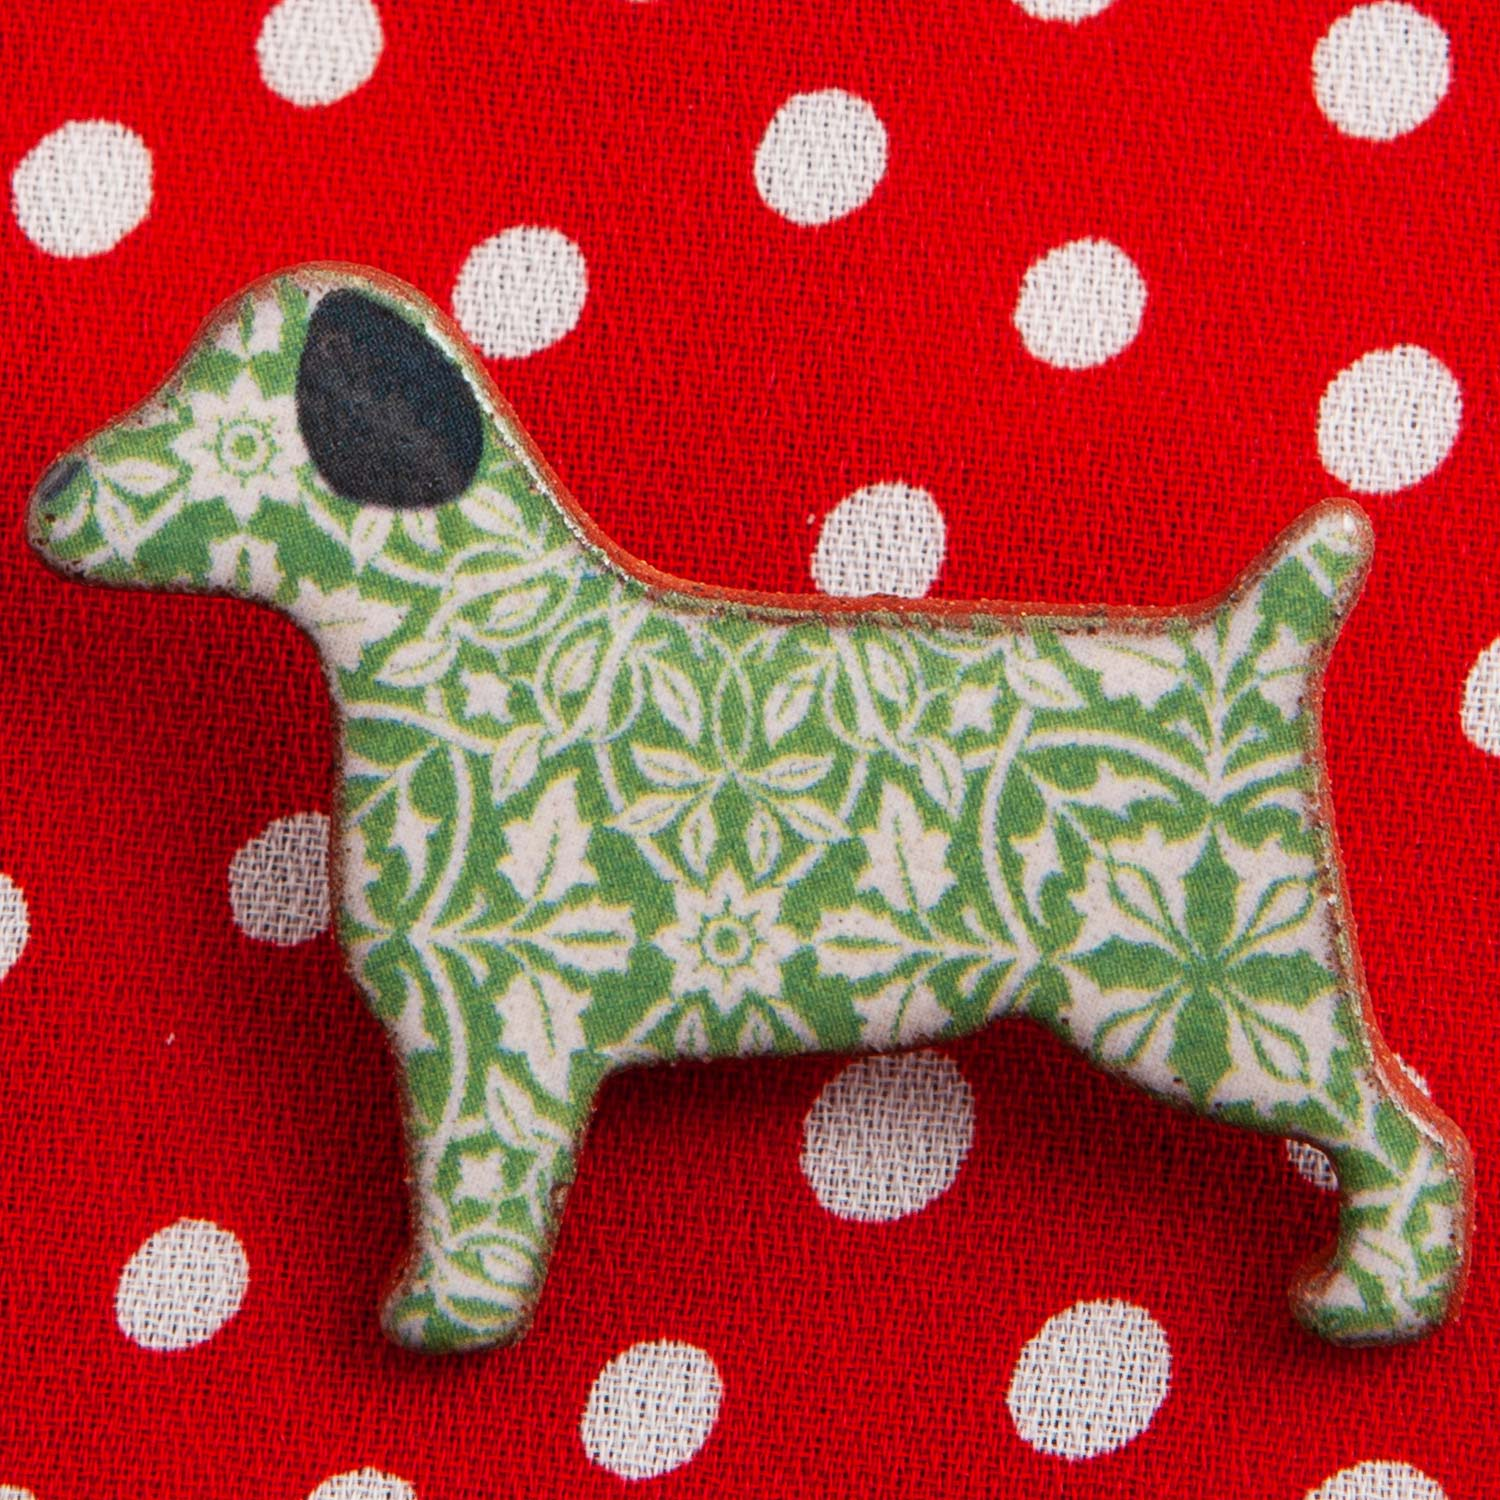 Dog Lover Gifts available at Dog Krazy Gifts – Ceramic Green William Morris Terrier Brooch by Mary Goldberg of Stockwell Ceramics, Just Part Of Our Collection Of Terrier Themed Gifts, Available At www.dogkrazygifts.co.uk